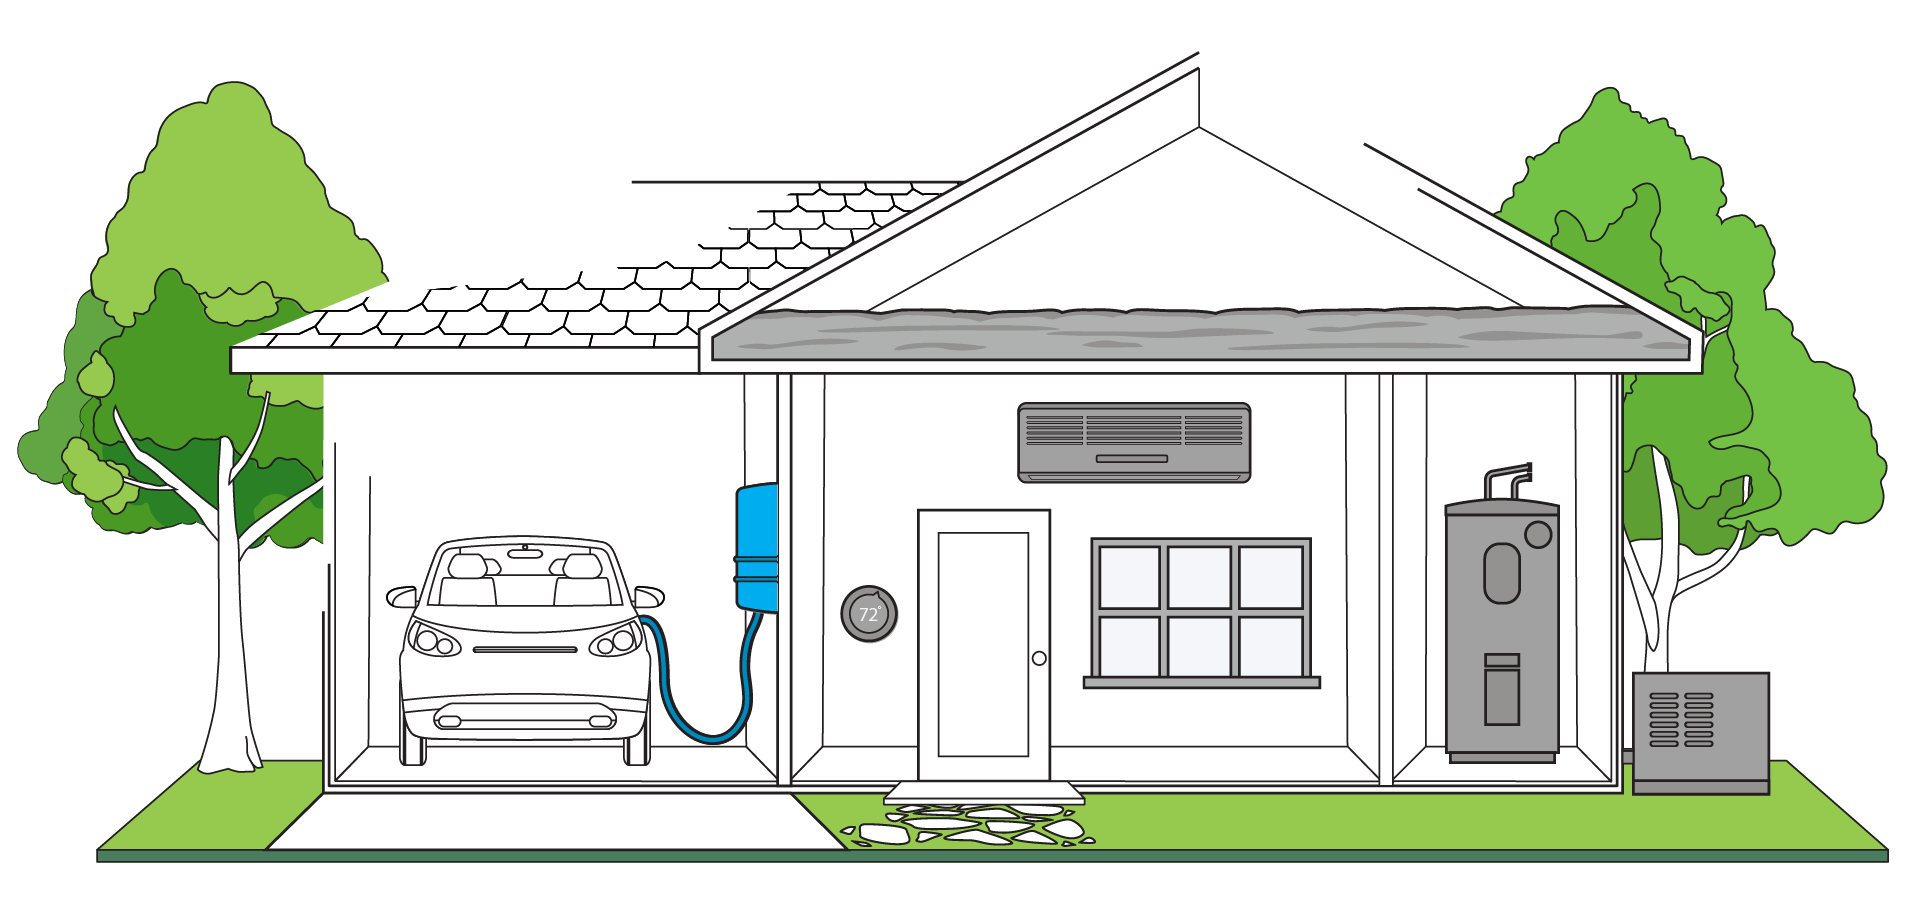 Home Upgrade Electric Vehicles image